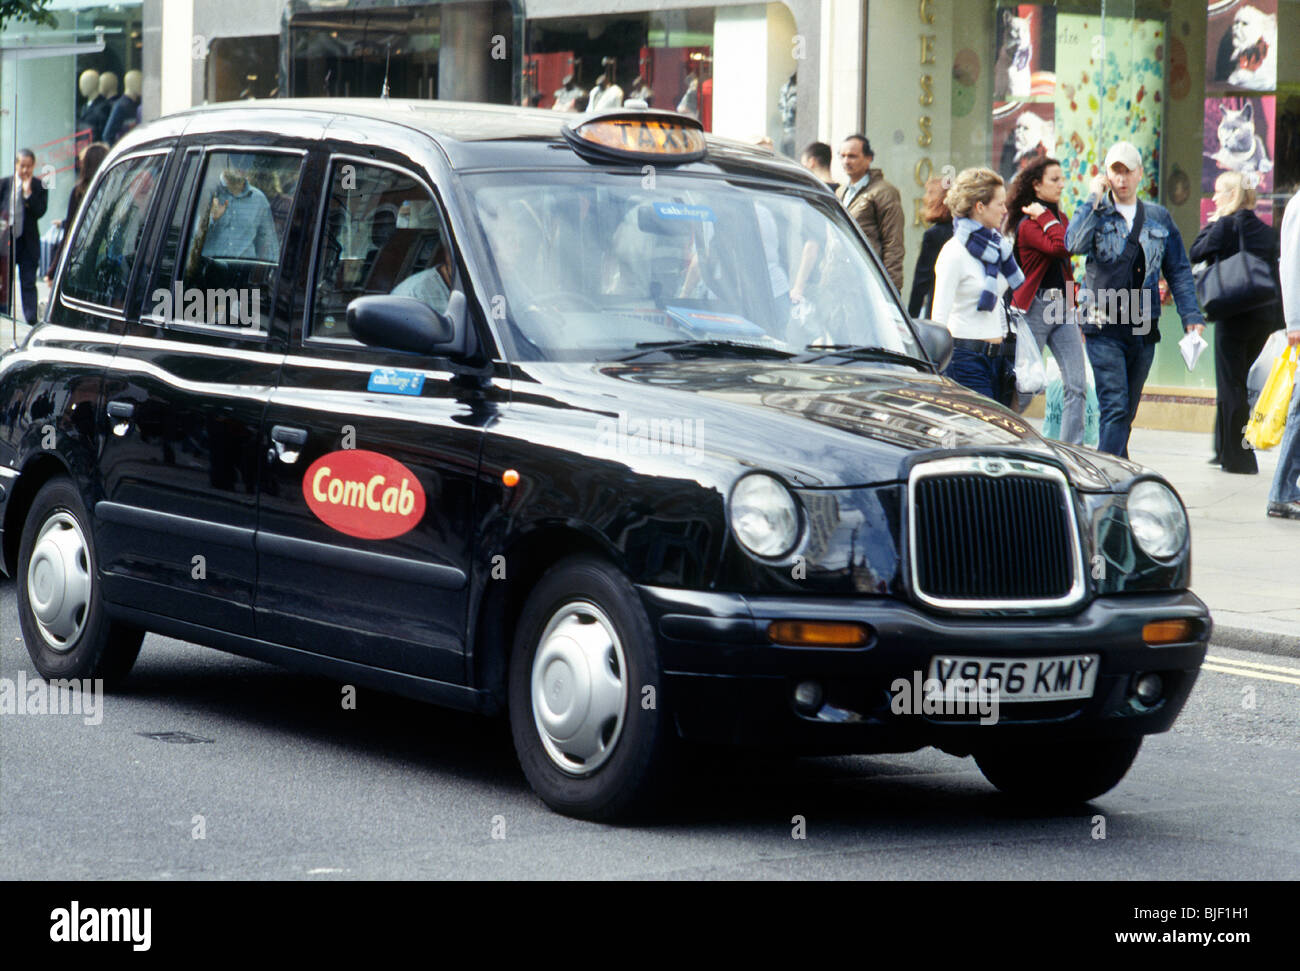 Taxi noir londonien traditionnel. Photo Stock